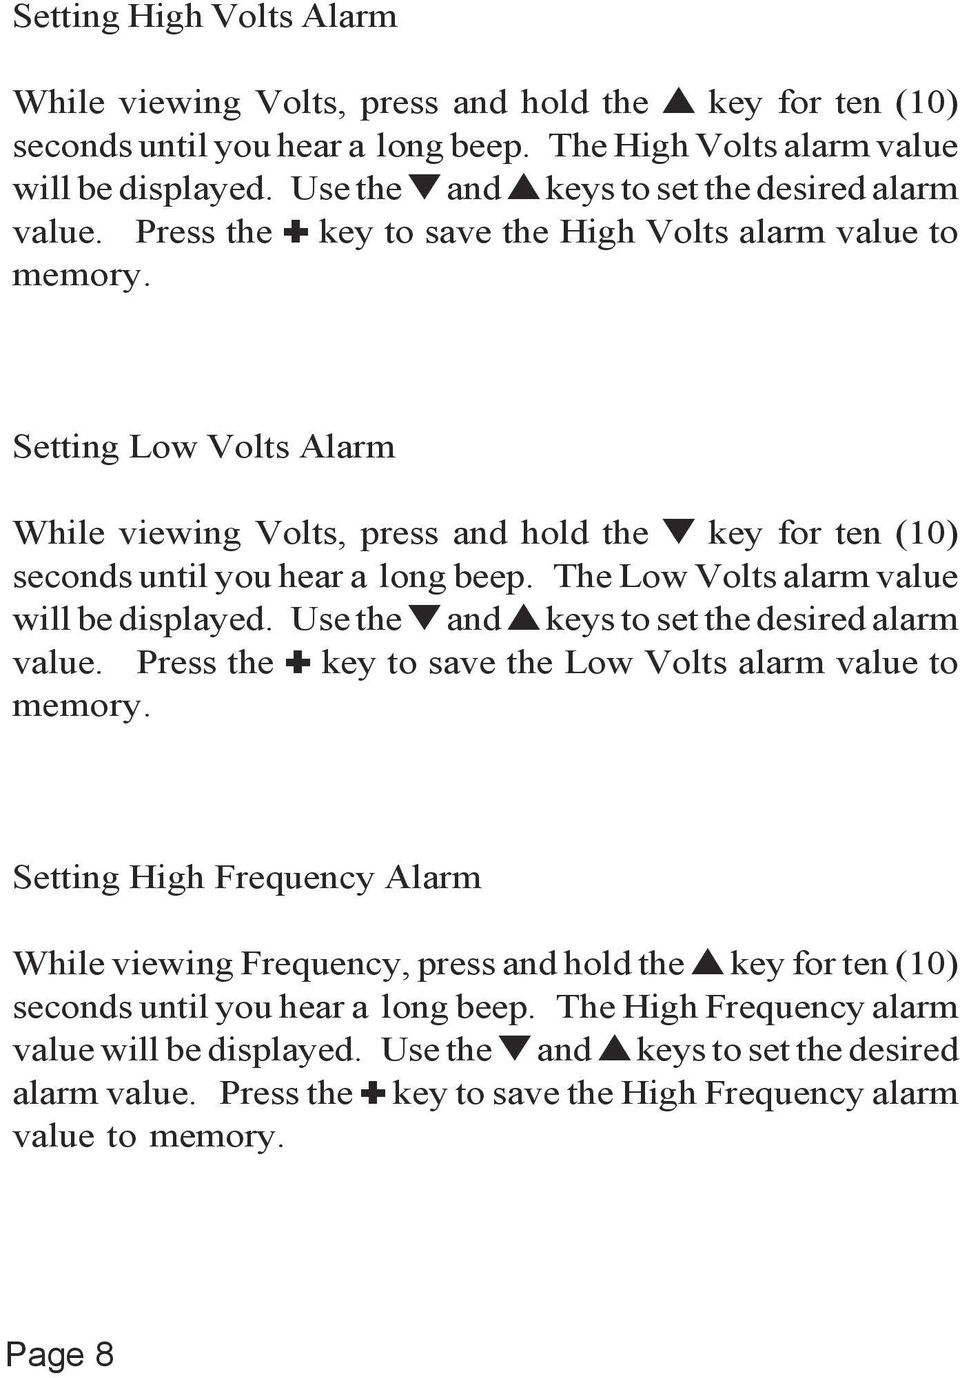 Setting Low Volts Alarm While viewing Volts, press and hold the t key for ten (10) seconds until you hear a long beep. The Low Volts alarm value will be displayed.